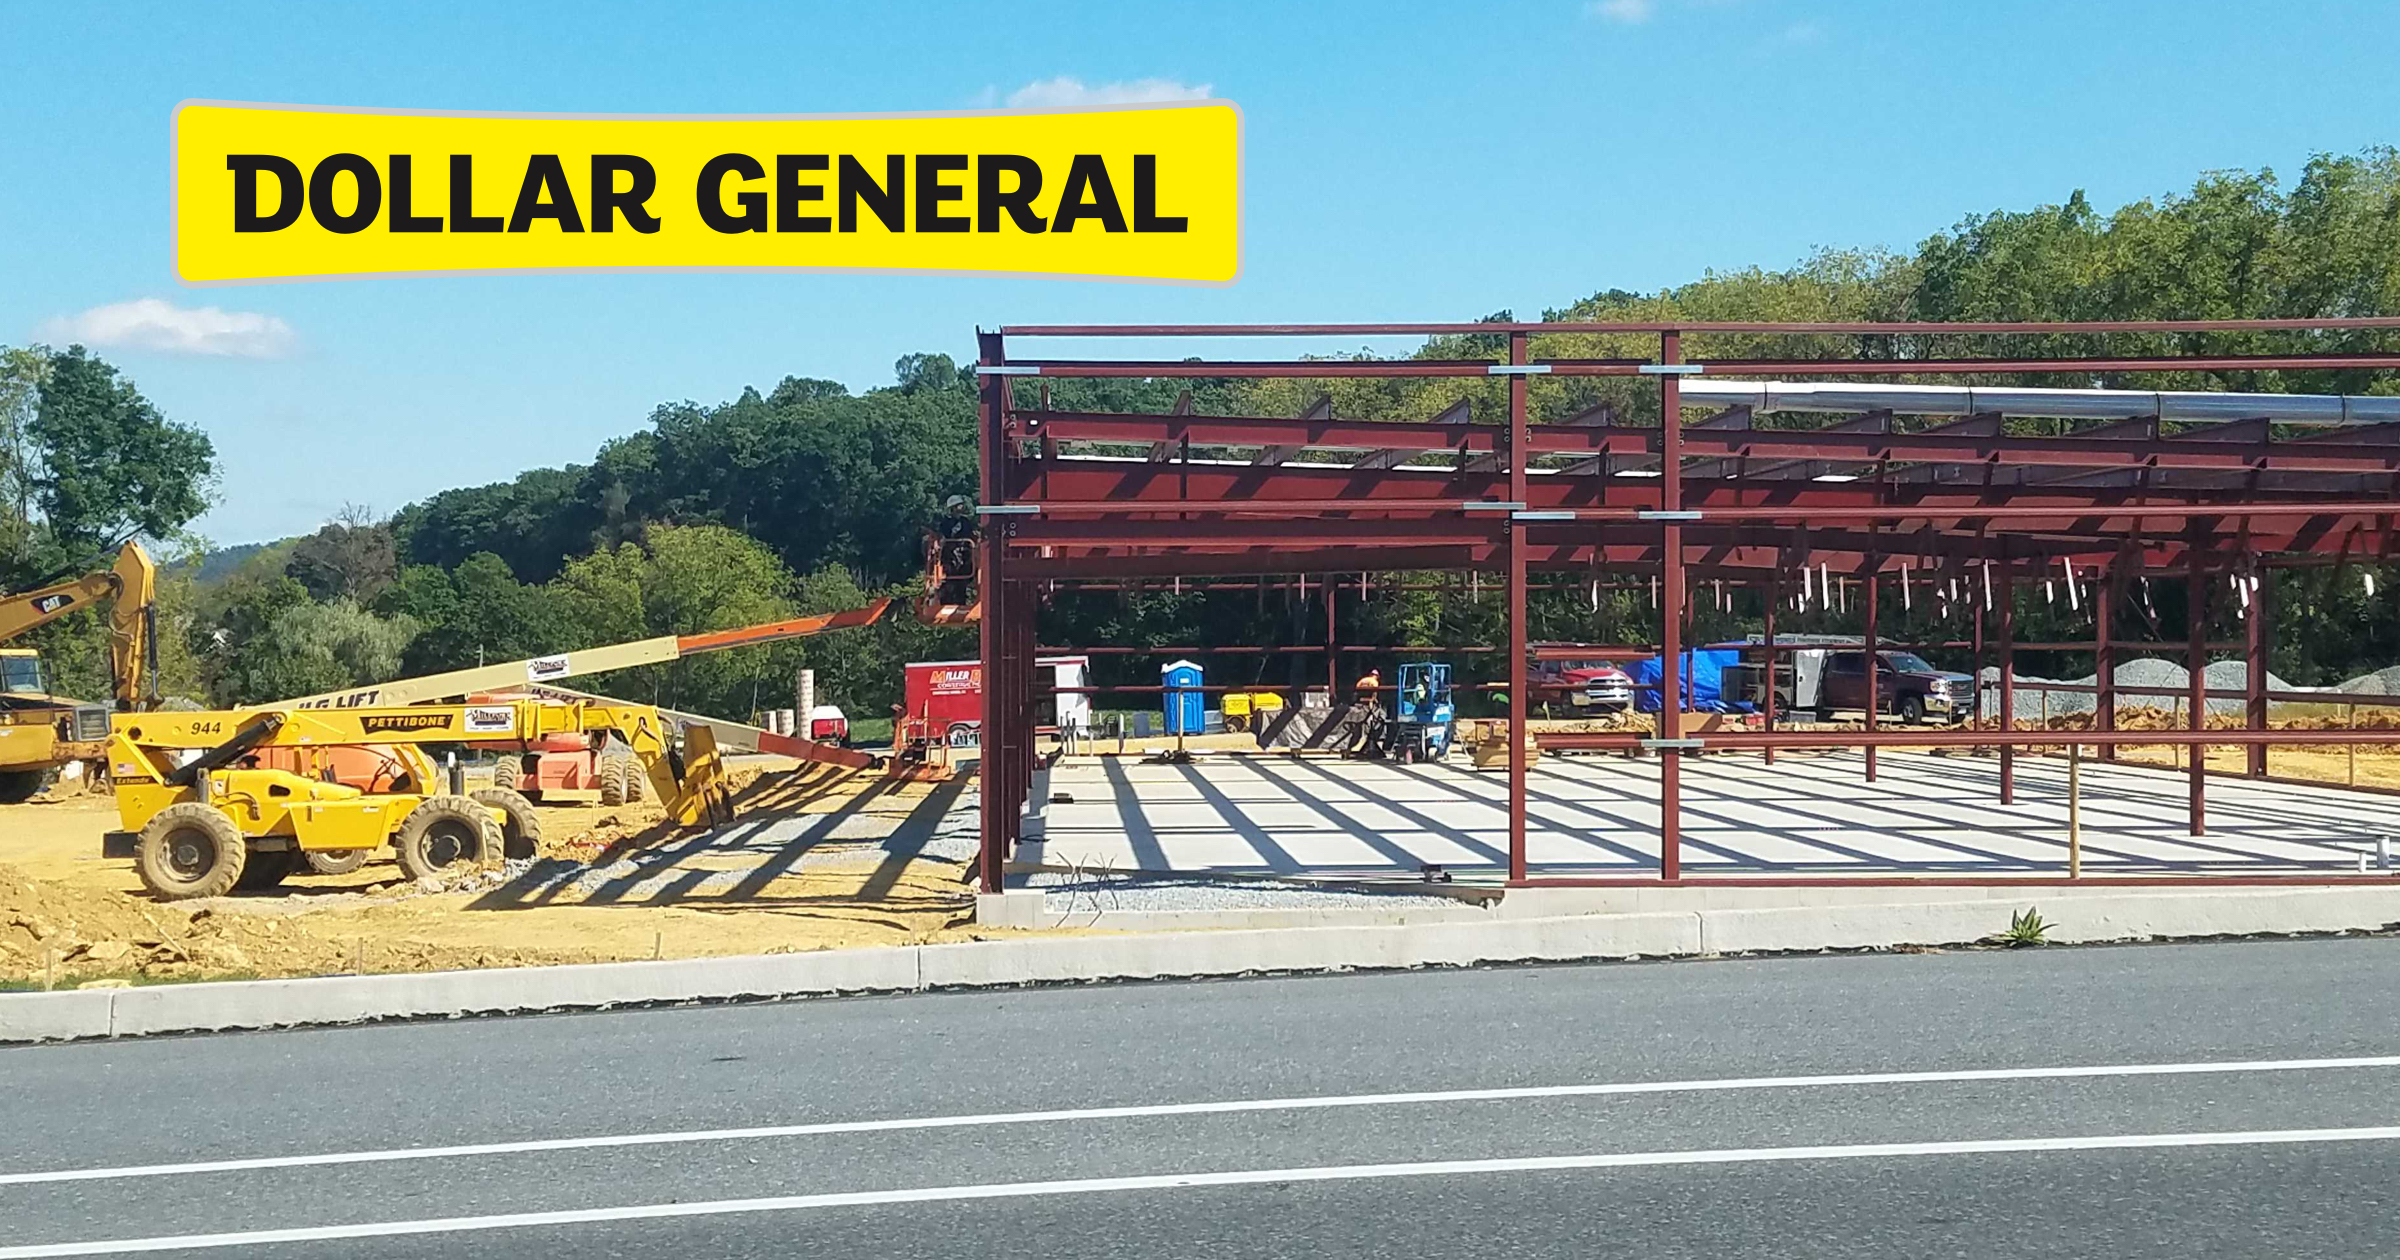 Dollar General under construction next to Eagle Rental will be county's eighth